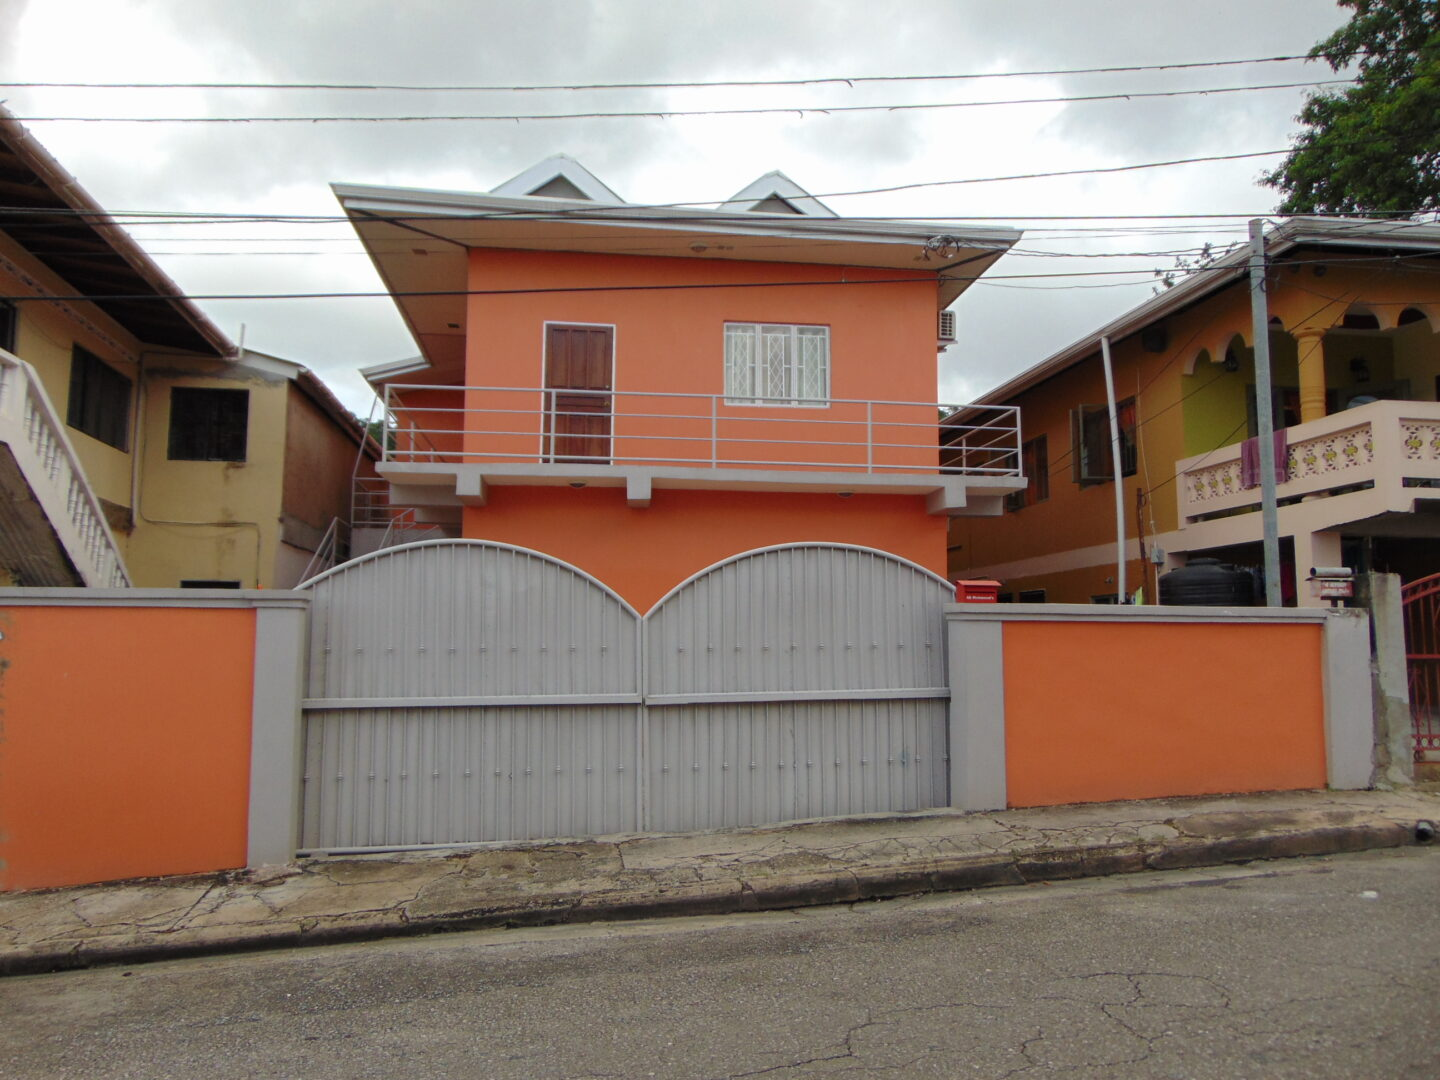 BELMONT NEWLY BUILT UNFURNISHED 2 BEDROOM, 2 BATH DOWNSTAIRS APARTMENT